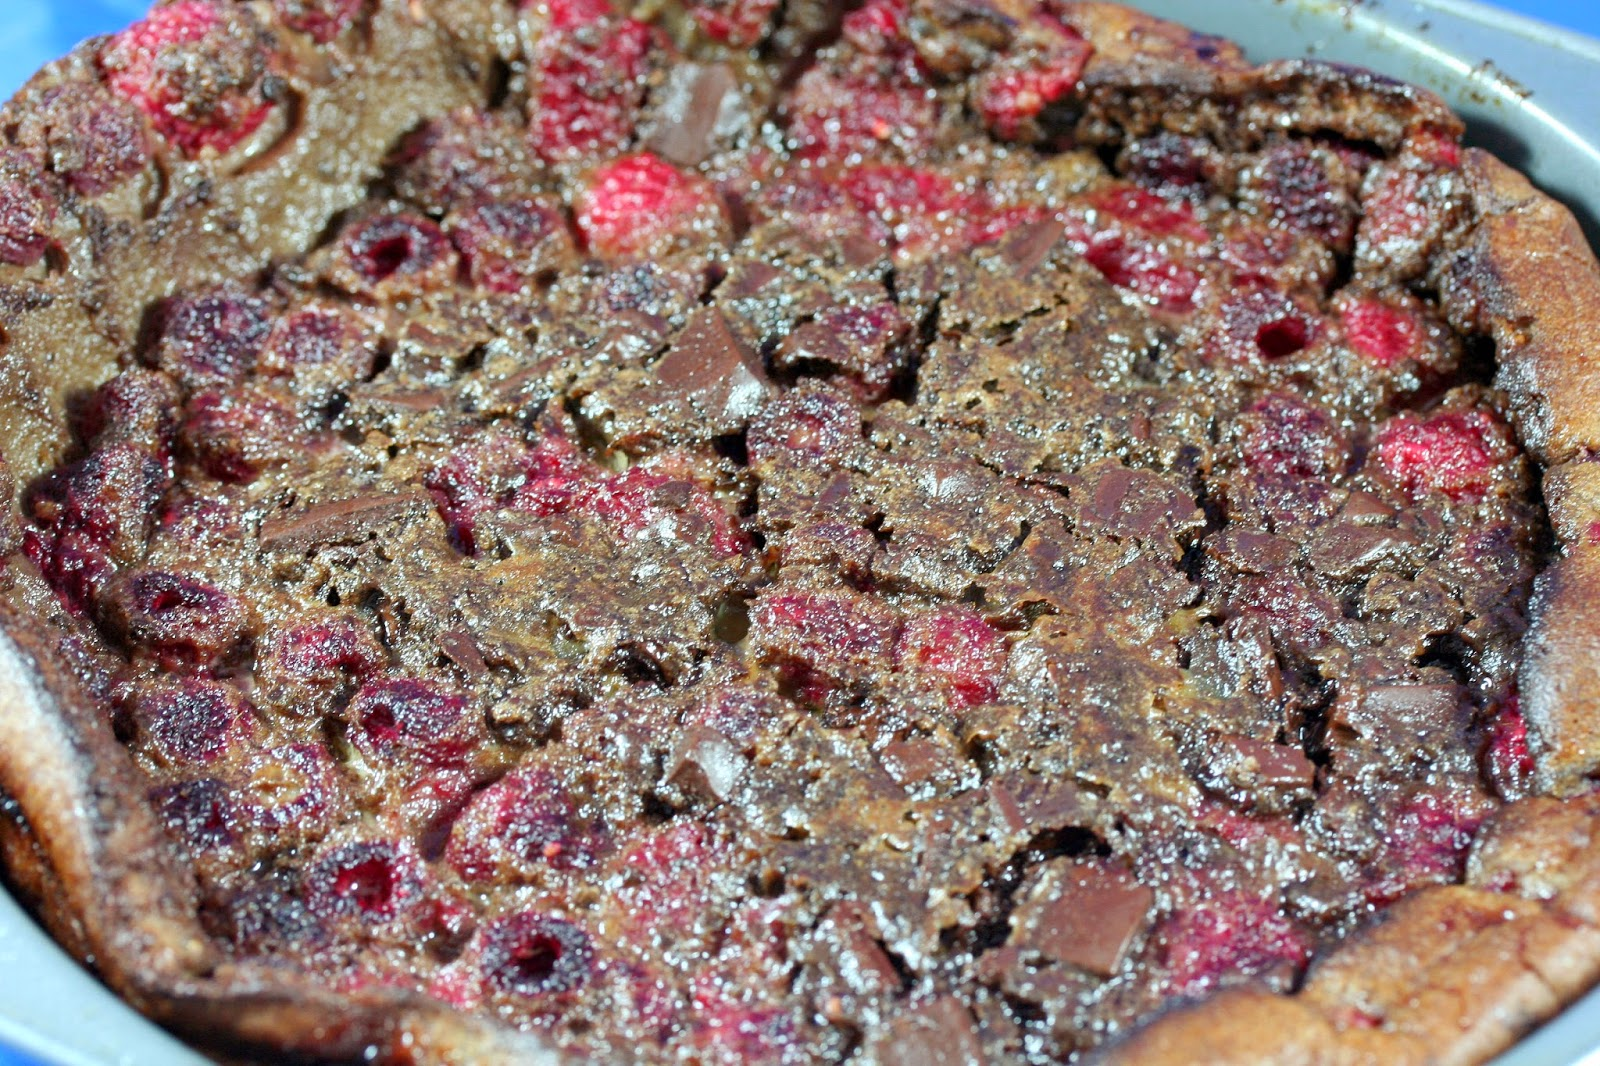 Culturally Confused: Gourmet: Chocolate Raspberry Clafoutis